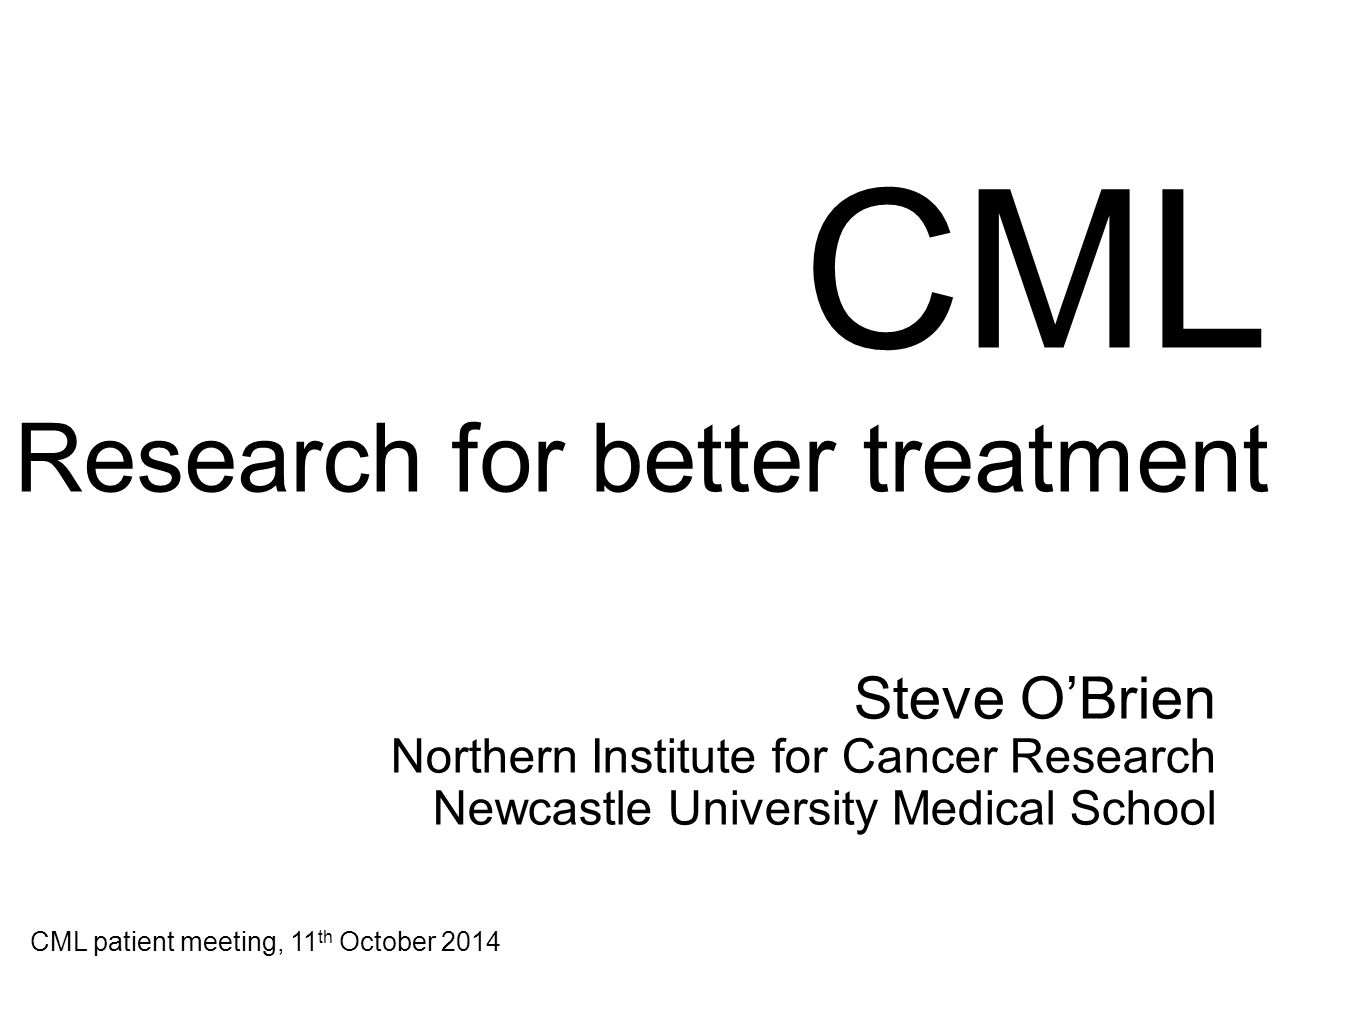 CML Research for better treatment Steve O'Brien Northern Institute for Cancer Research Newcastle University Medical School CML patient meeting, 11 th